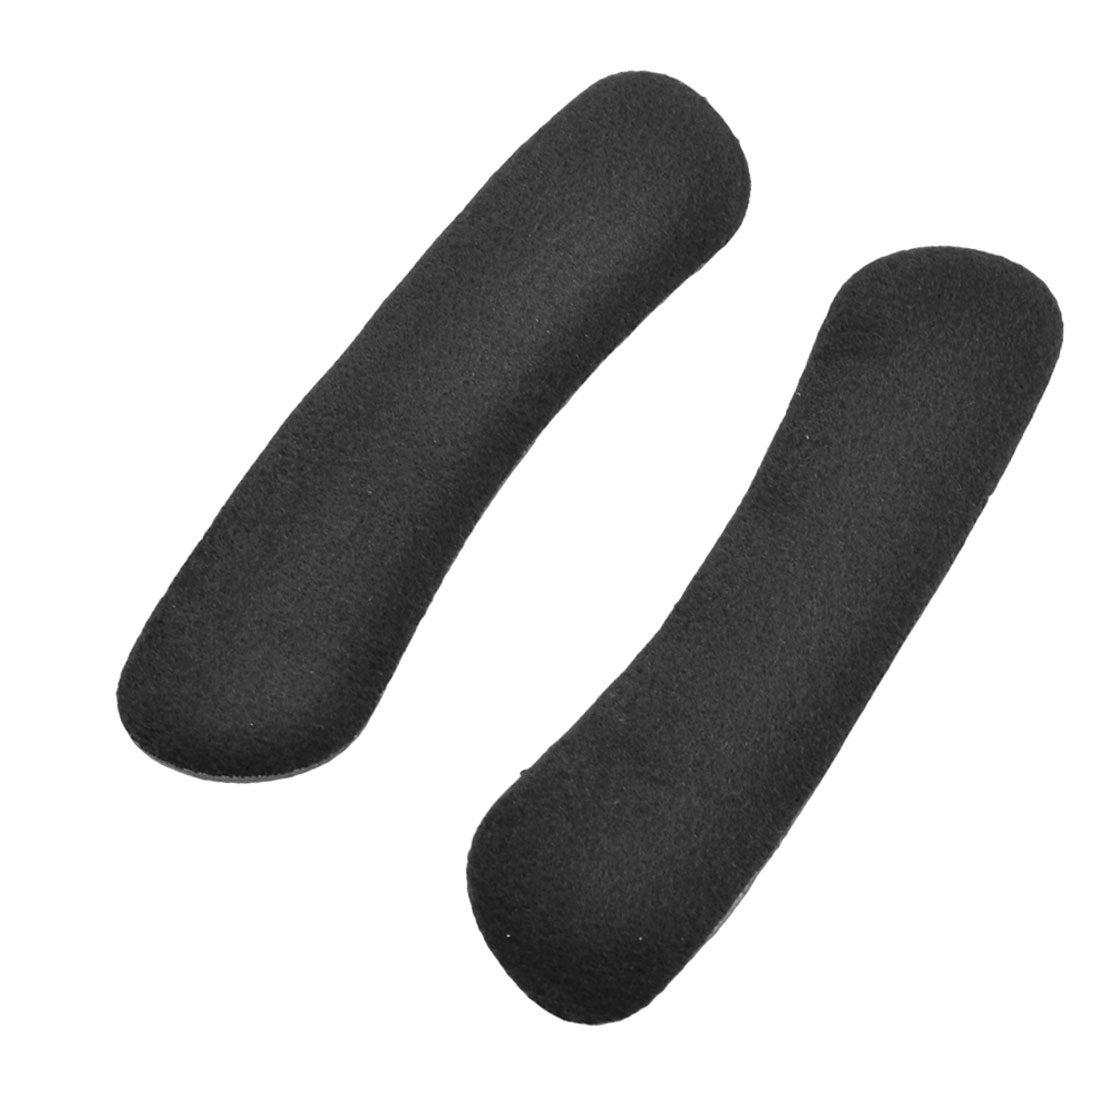 Ladies High Heel Shoes Back Pads Insoles Protector Foot Care Black Pair